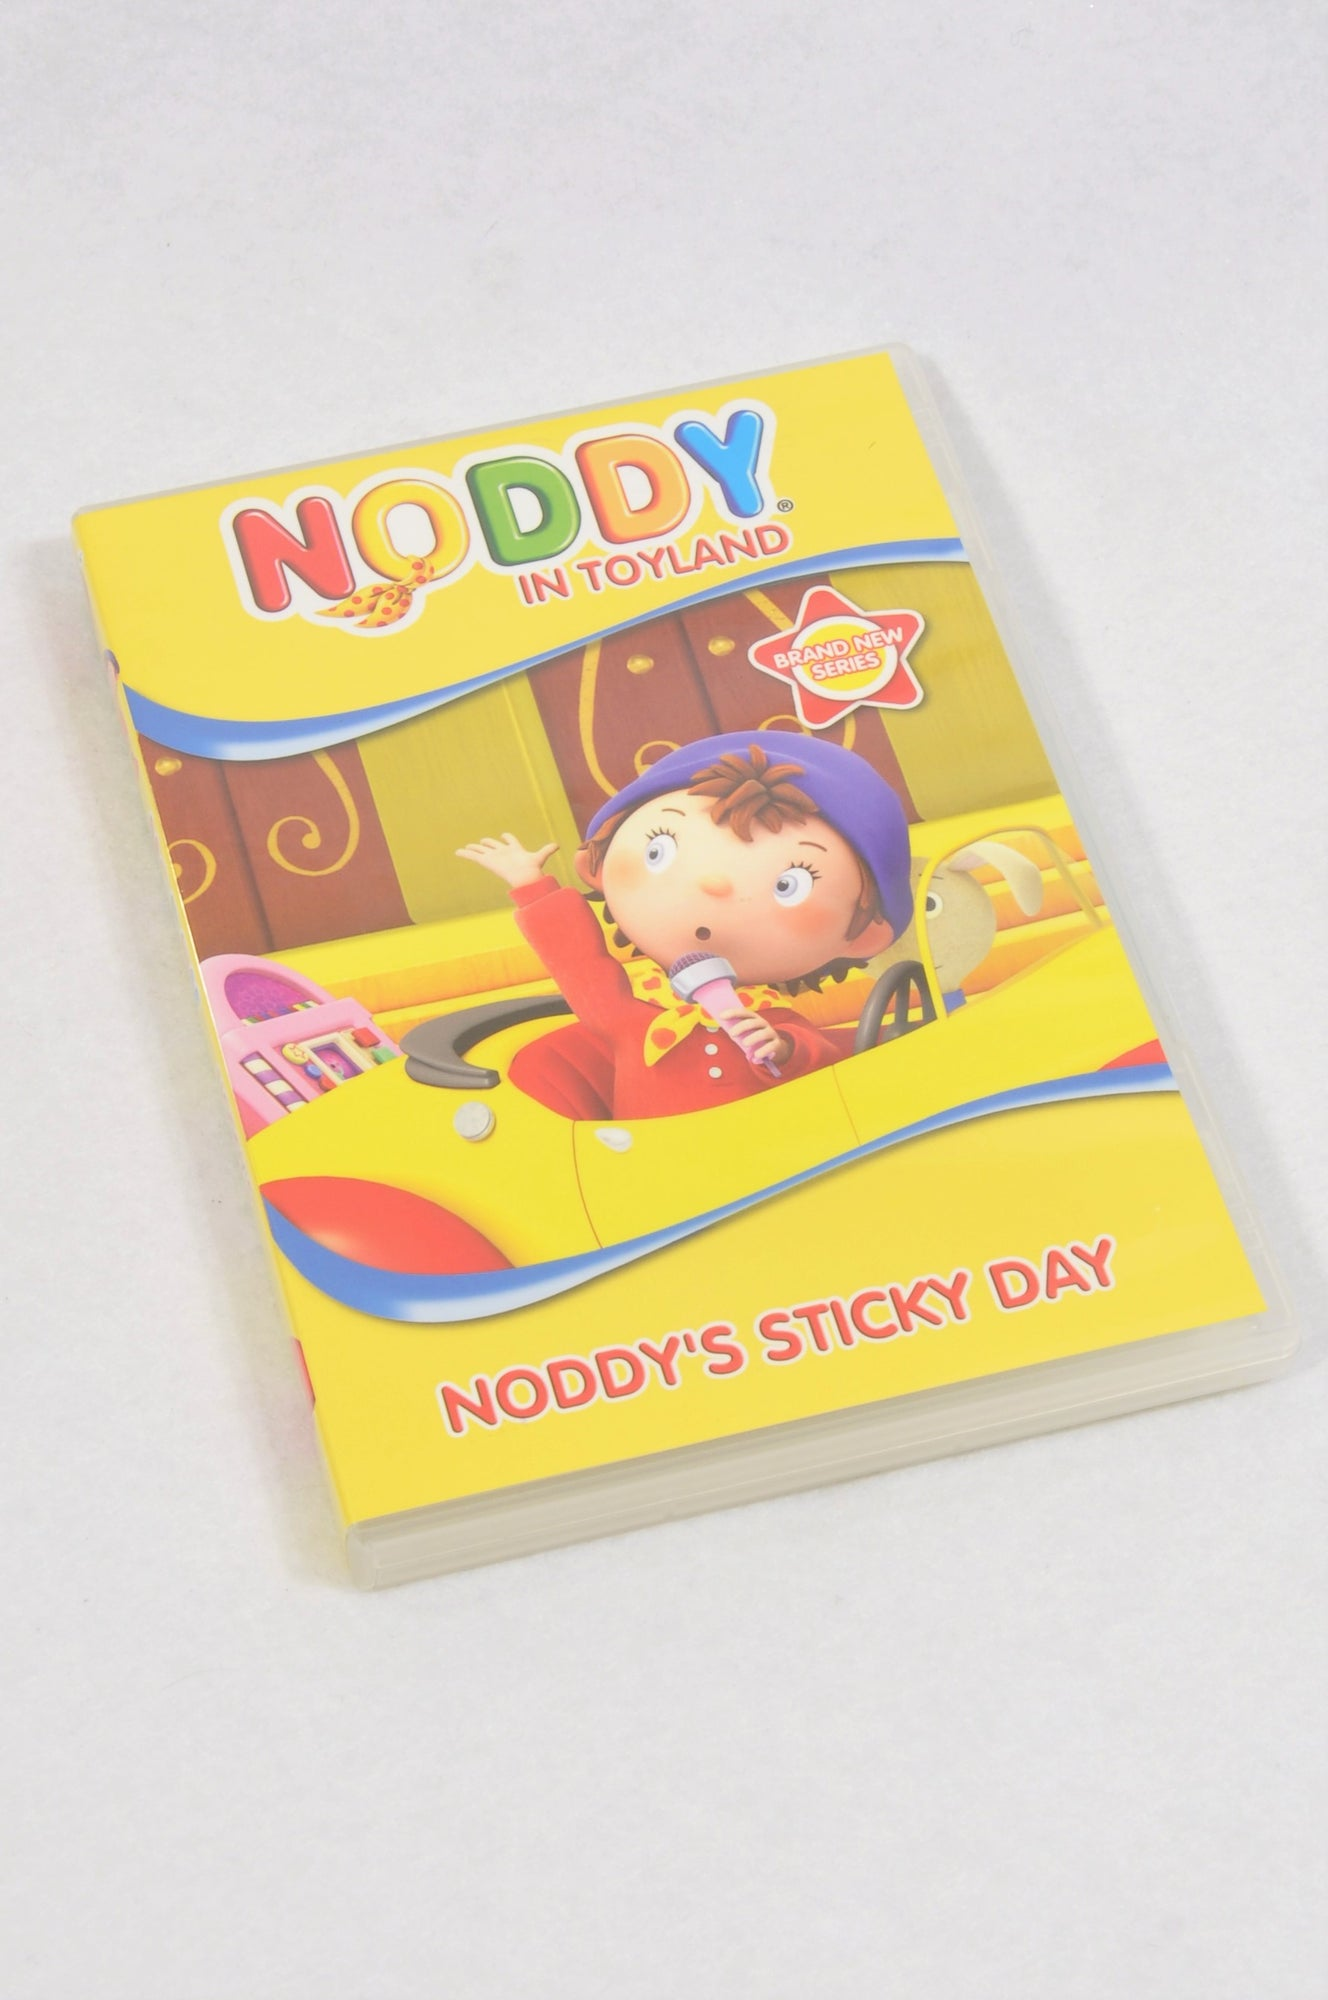 Unbranded Noddy In Toyland Sticky Day Kids DVD Unisex 6 months to 3 years